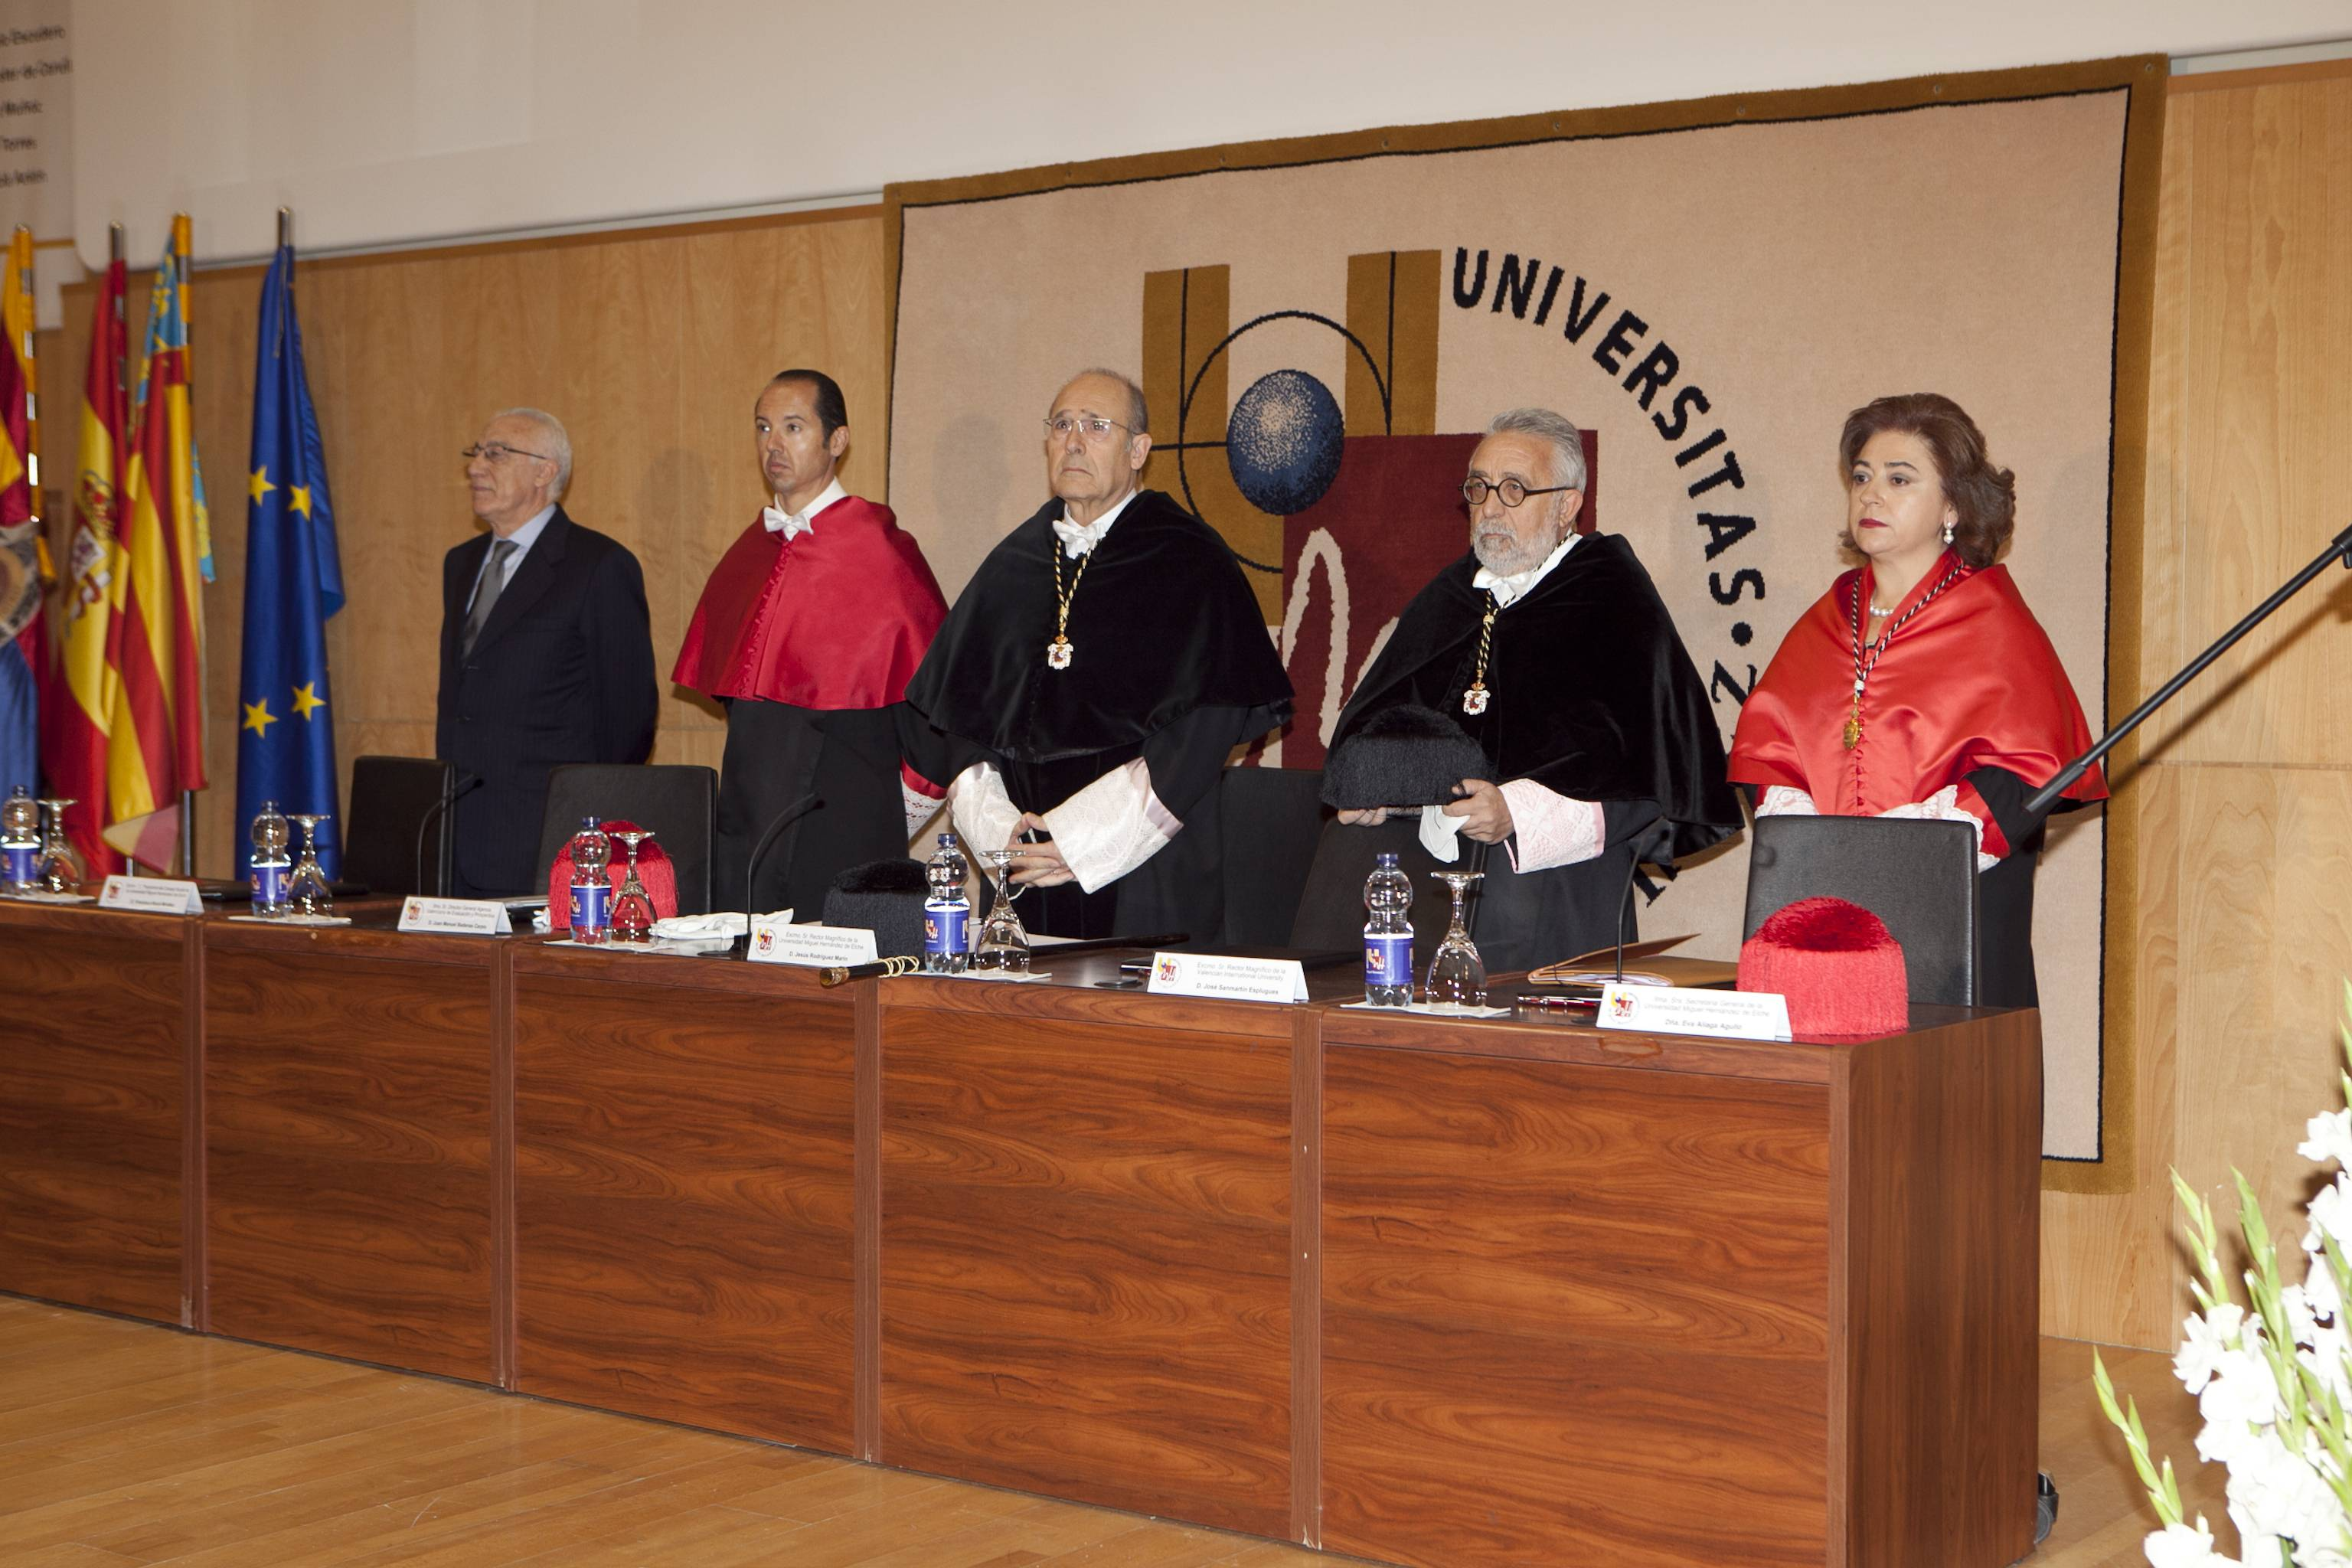 doctor-honoris-causa-luis-gamir_mg_0645.jpg